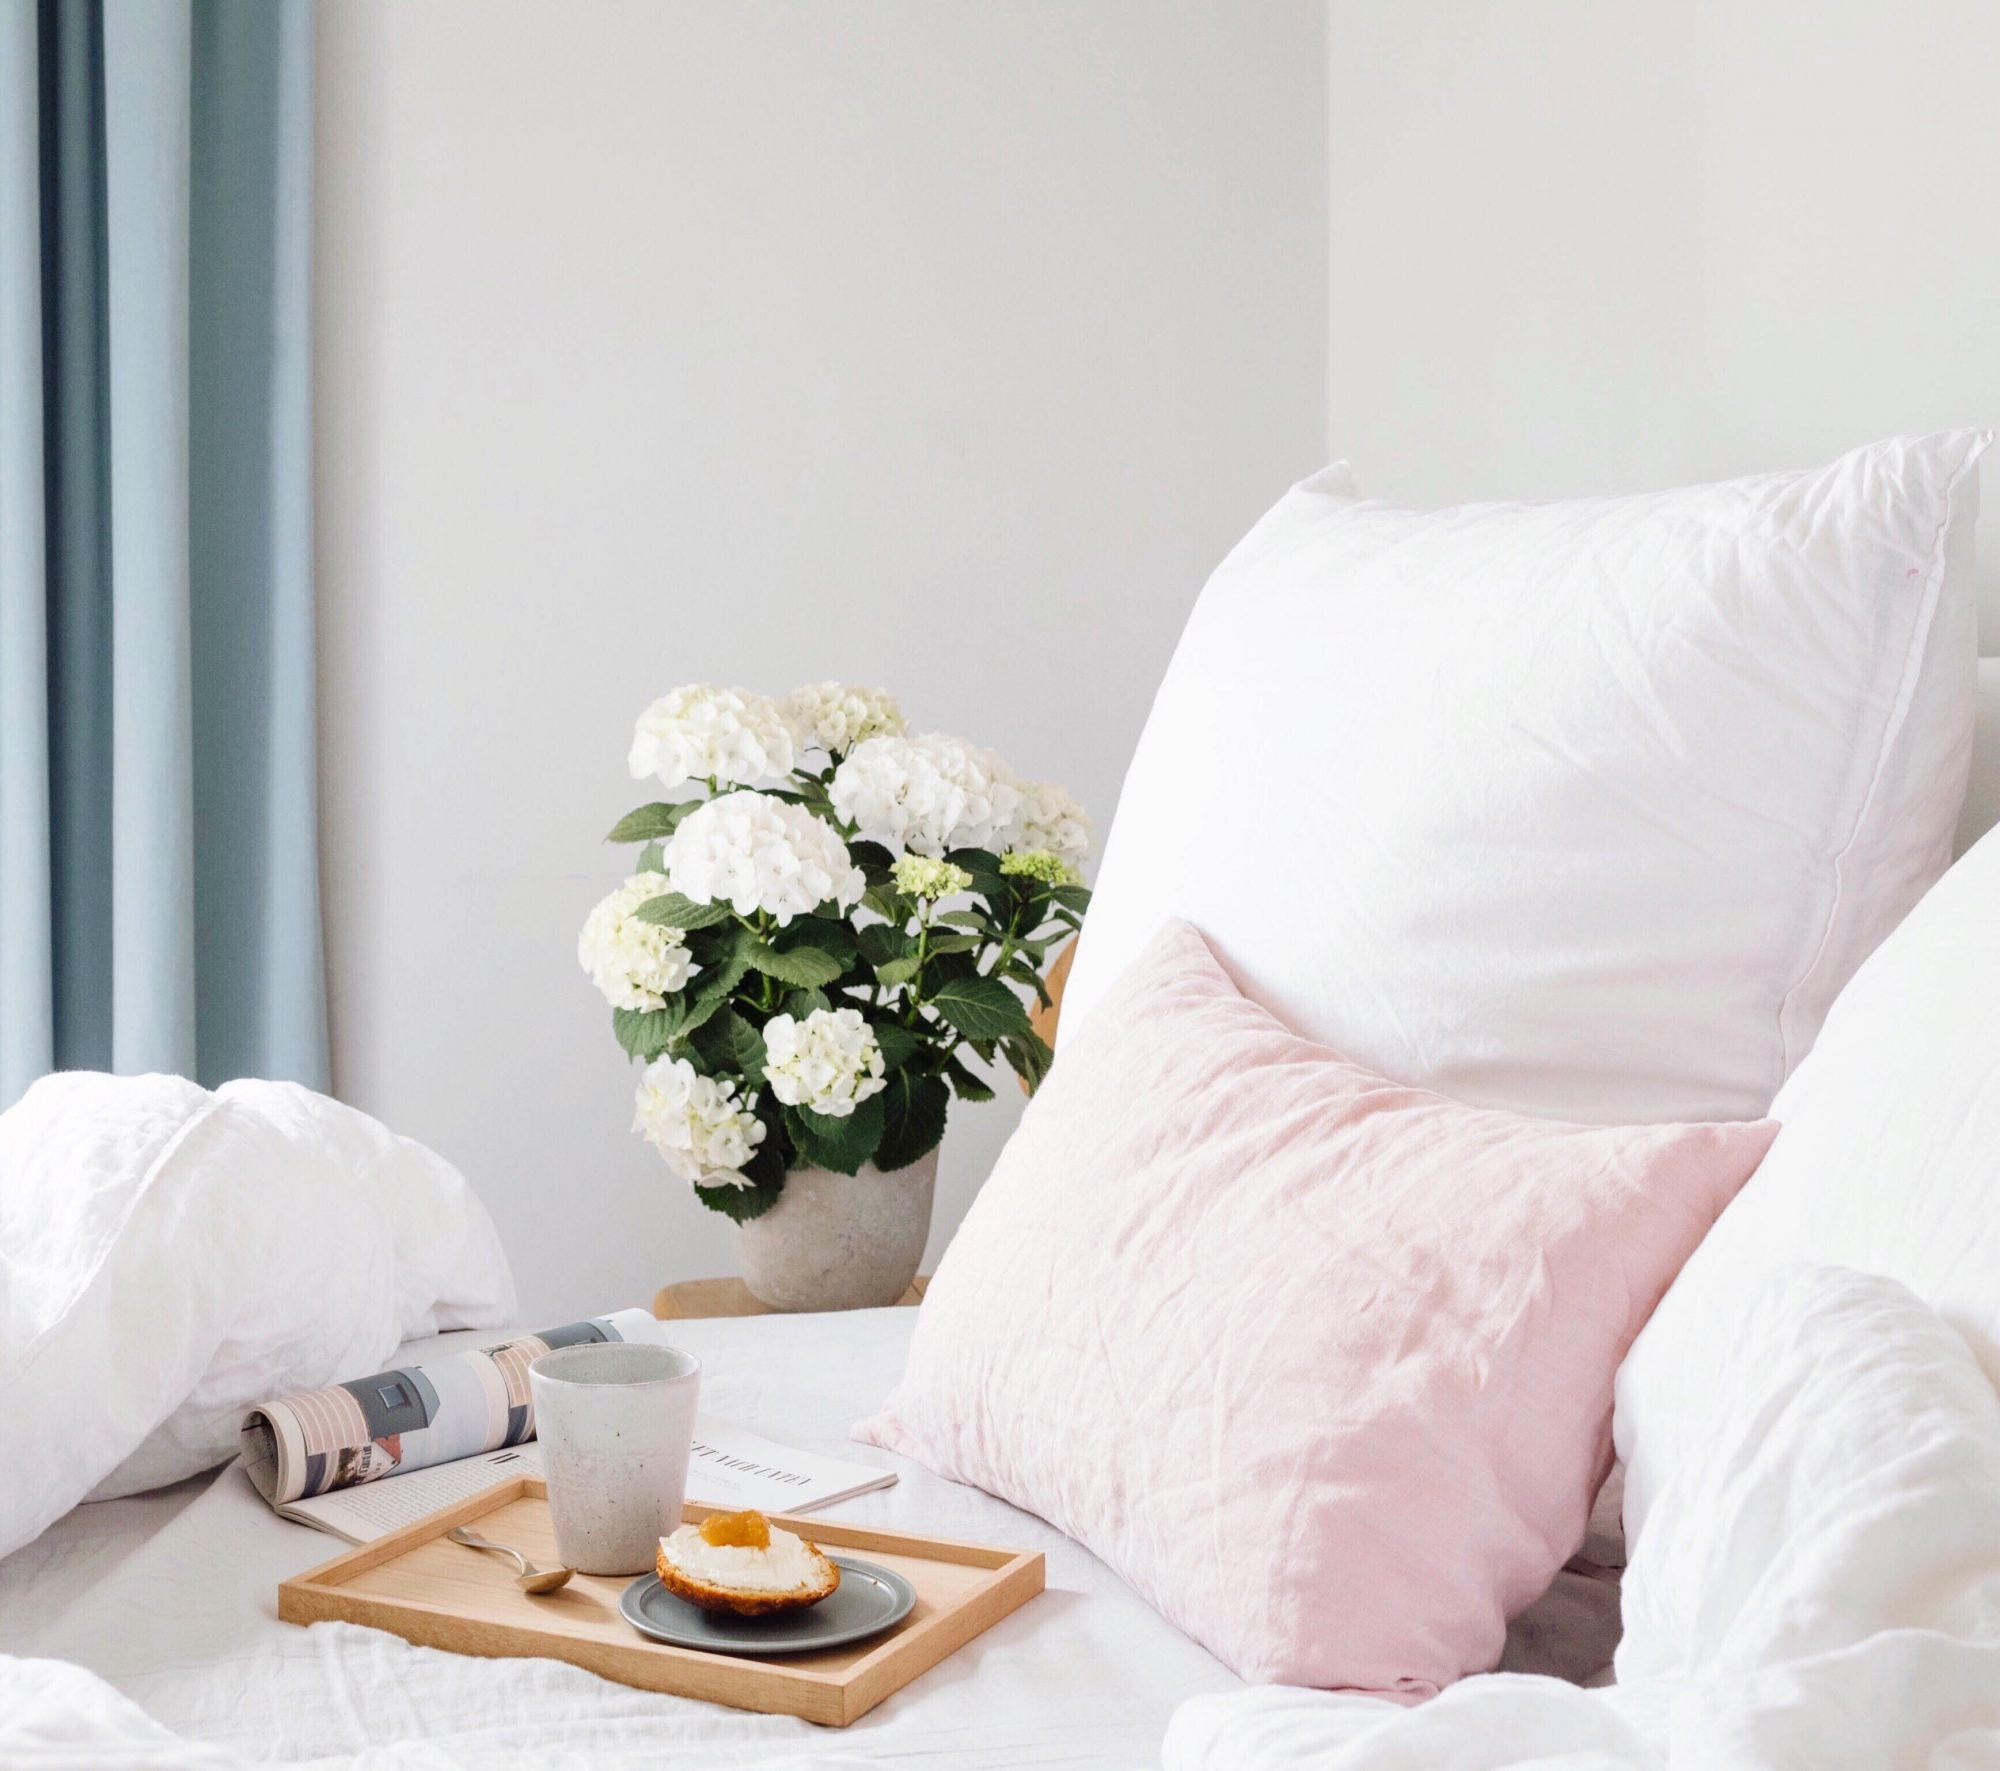 Pretty Bed with Flowers and a Breakfast Tray